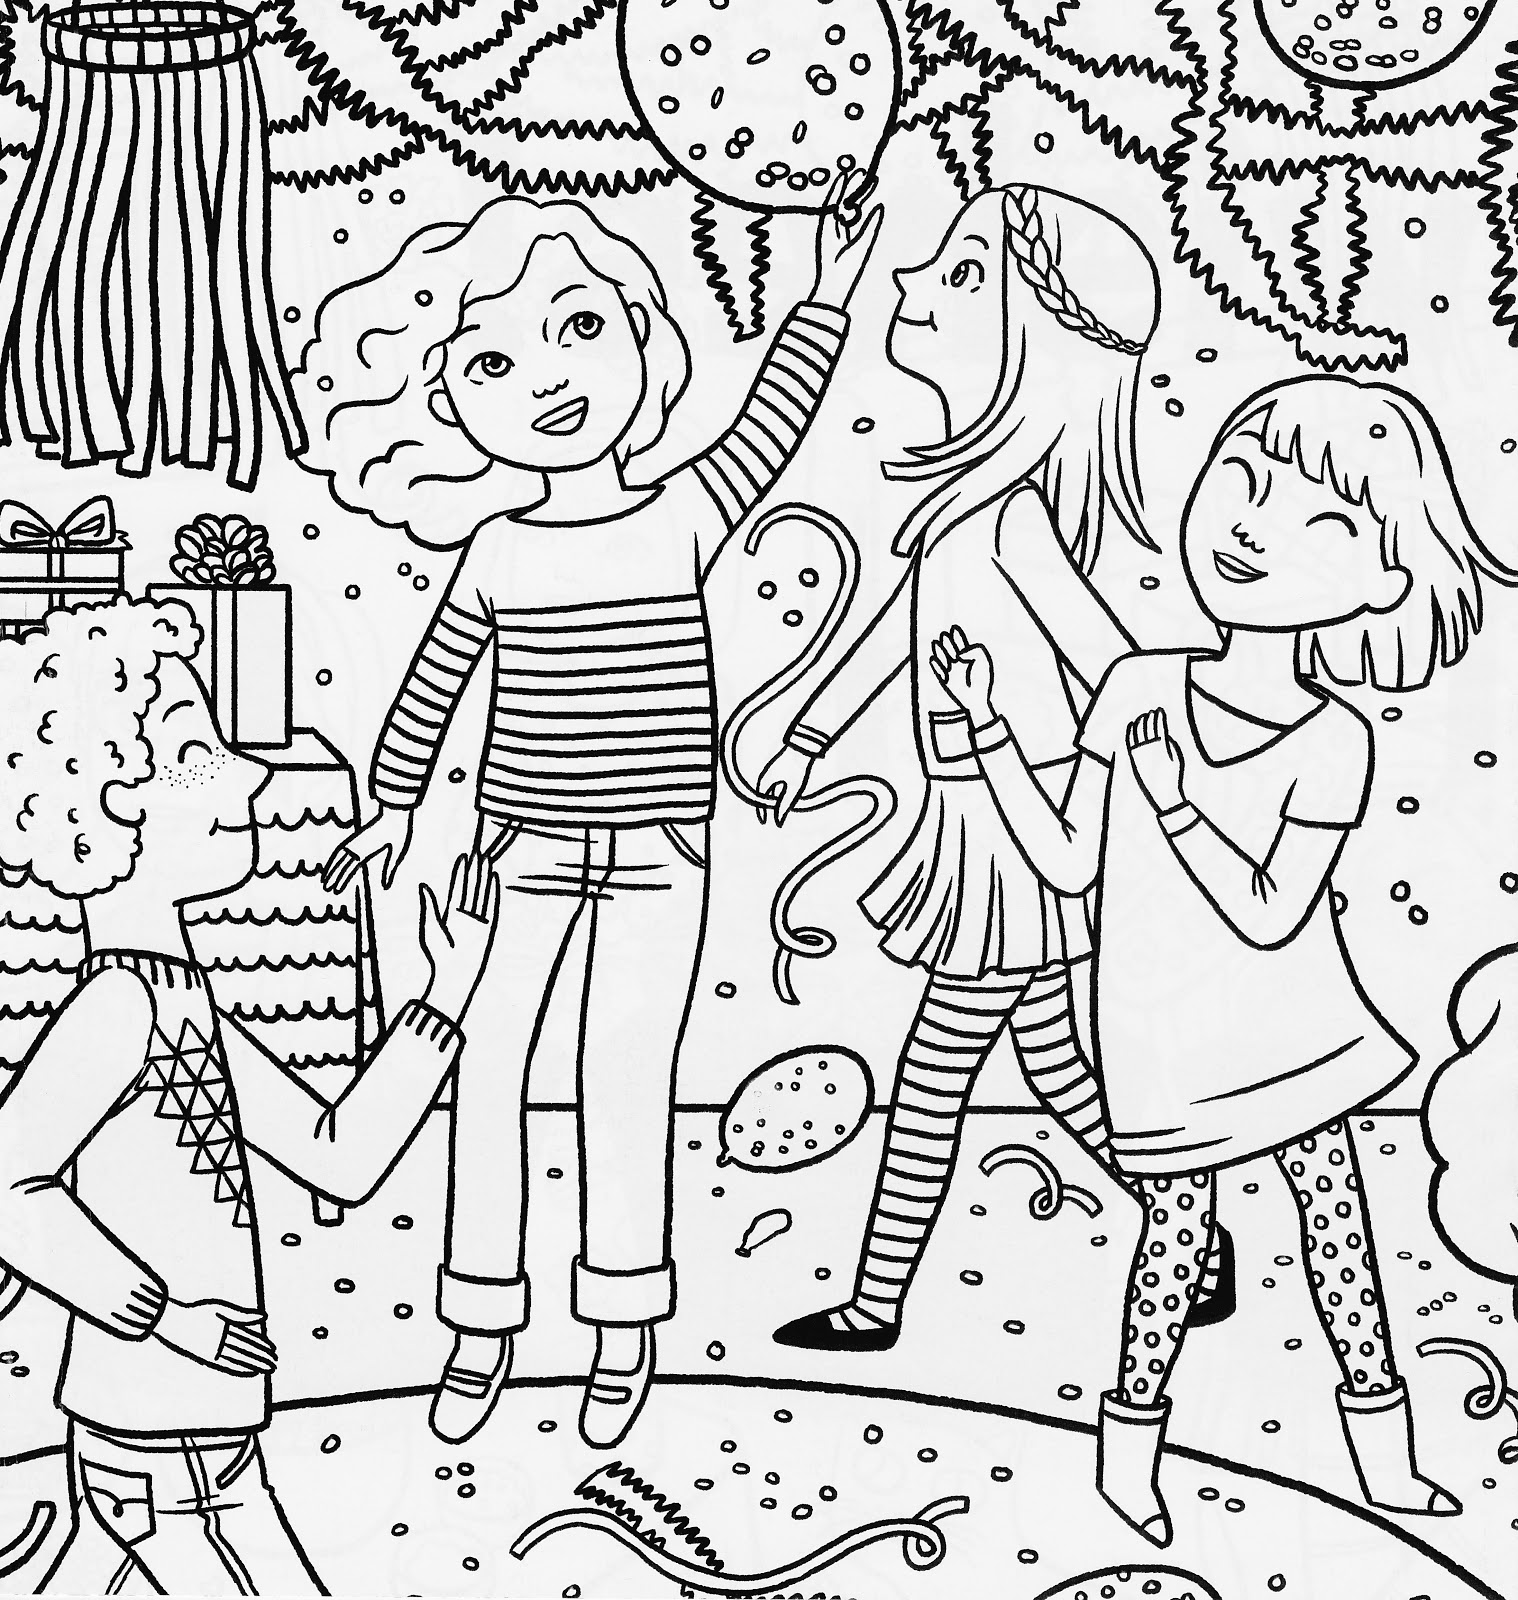 coloring pages american girl - bonggamom finds american girl magazine special birthday